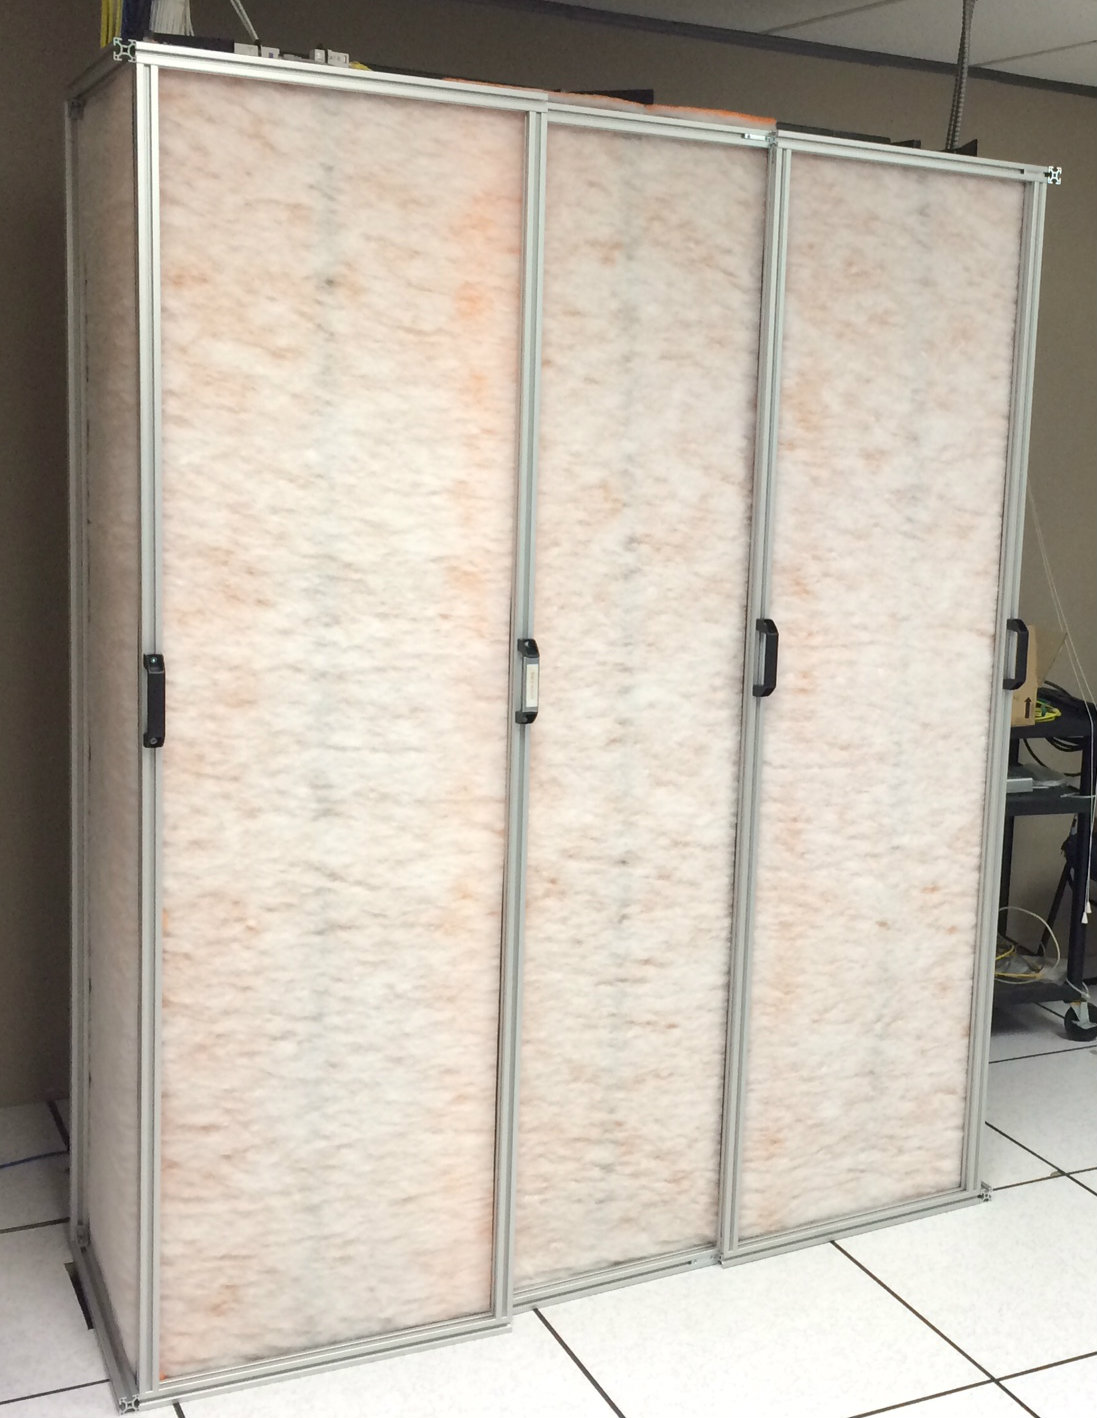 IT equipment protection filter for construction work